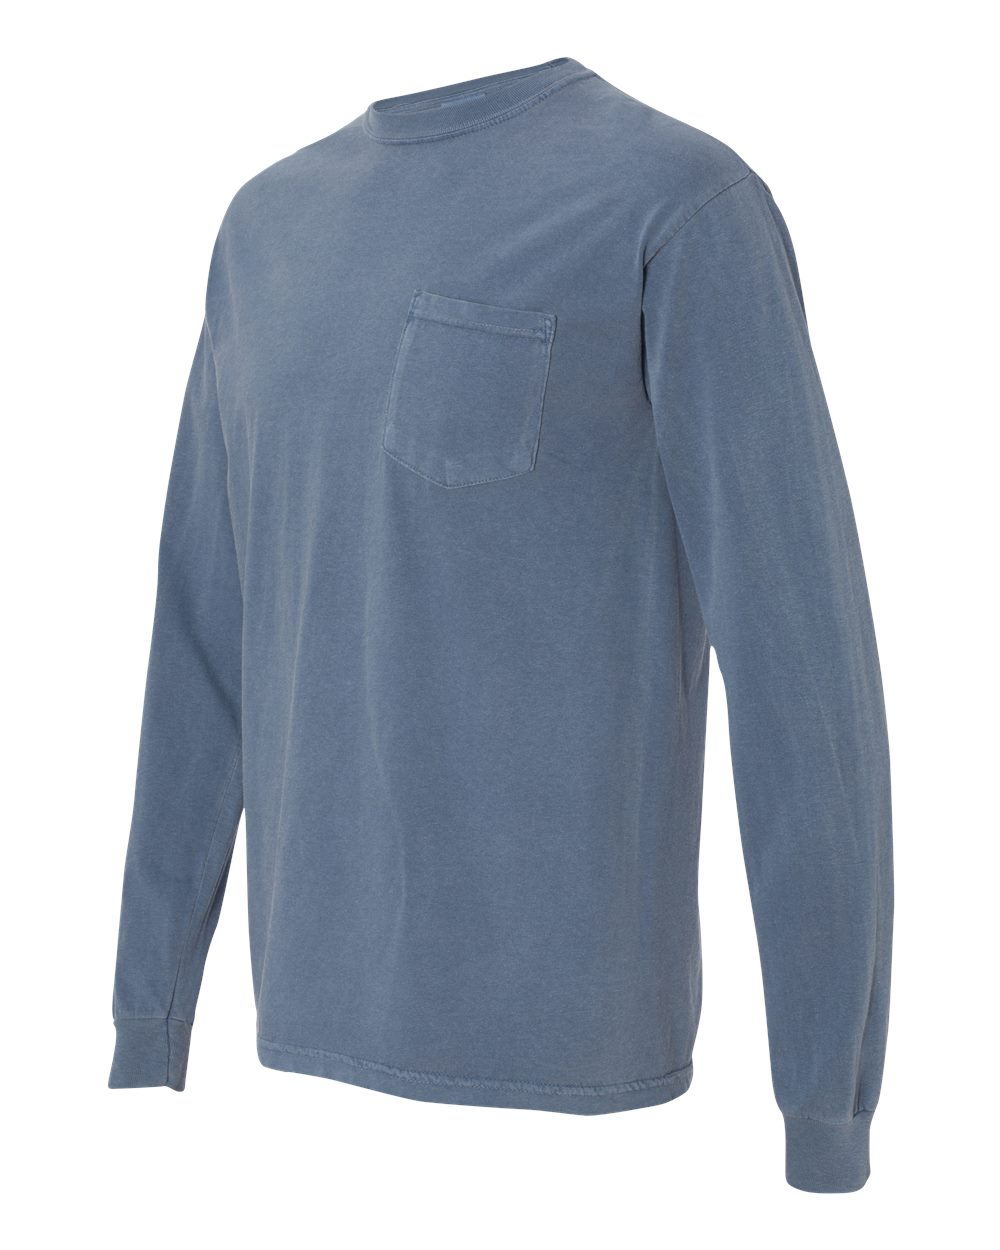 blue comforter light pocket color colors ato sleeve comfort tee classics long campus t shirts